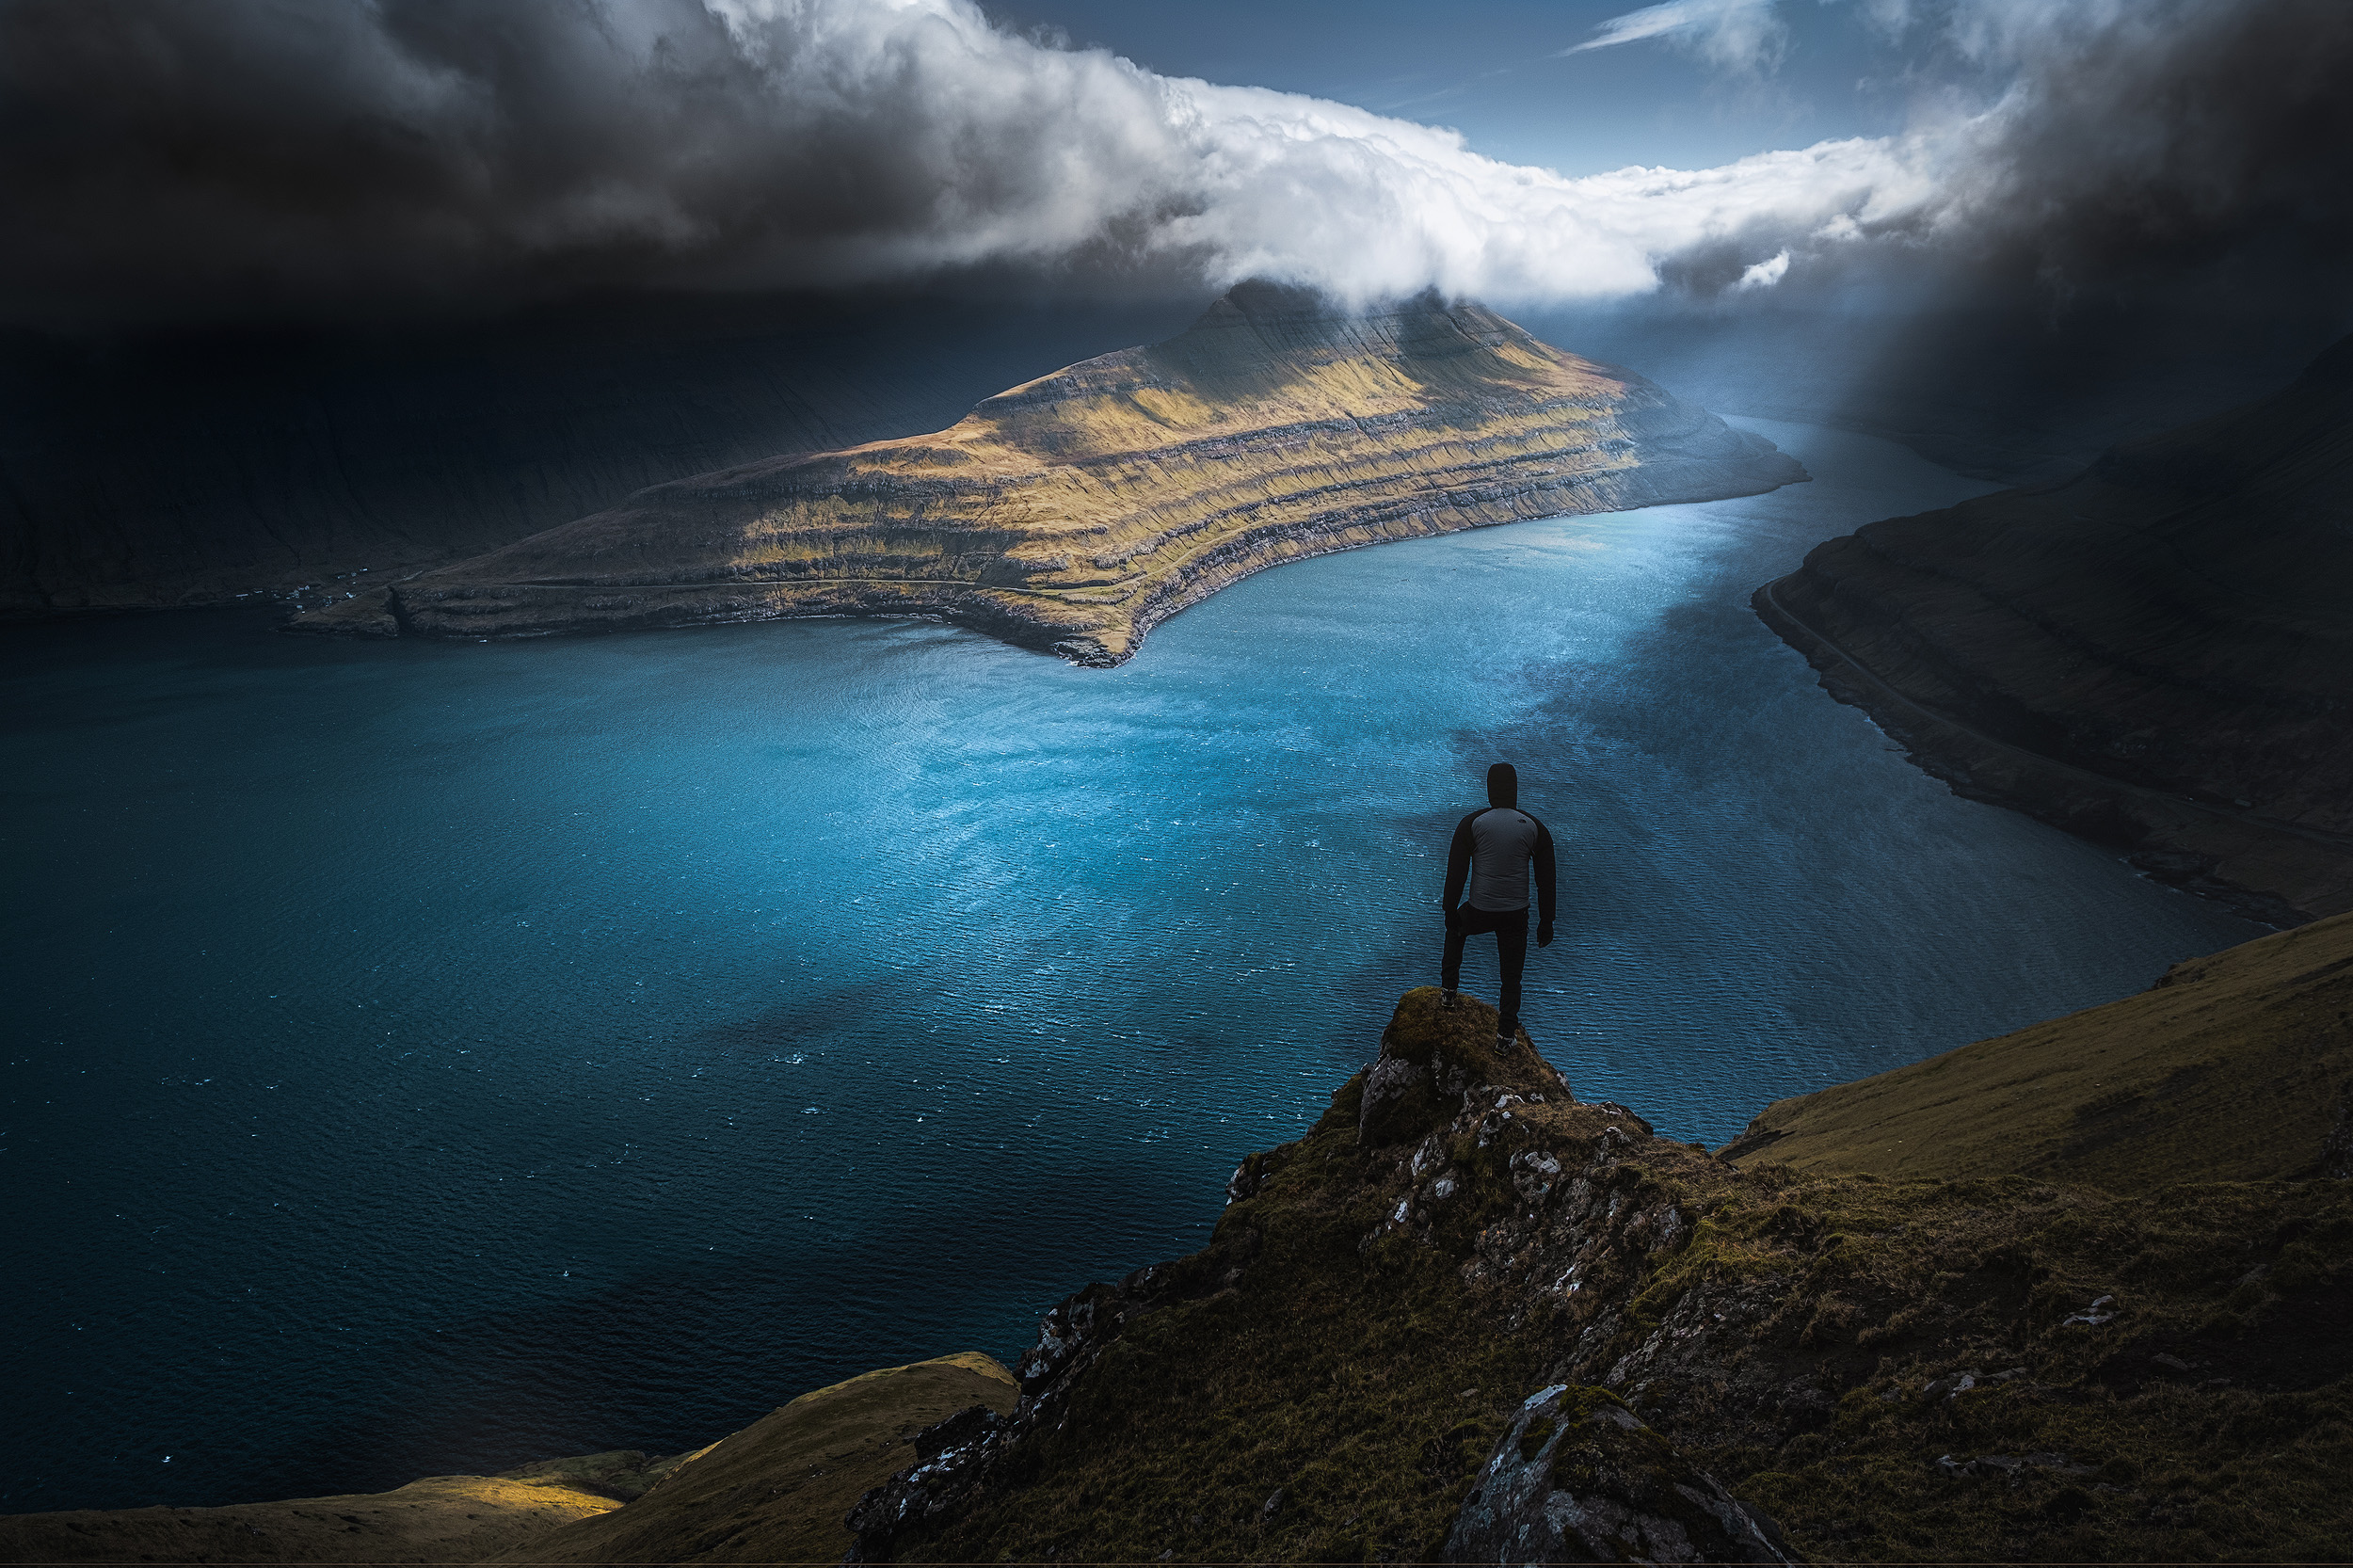 Hvithamar   The ridge high above Funningsfjørður on the island of Streymoy in the Faroe Islands is one of the windiest places I've ever been. We could barely stand up from the wind, but the changing light from the heavy clouds made for a really dramatic scene and including my good friend and workshop co-leader Andrea Livieri into the frame gave an idea of the scale of the scene.